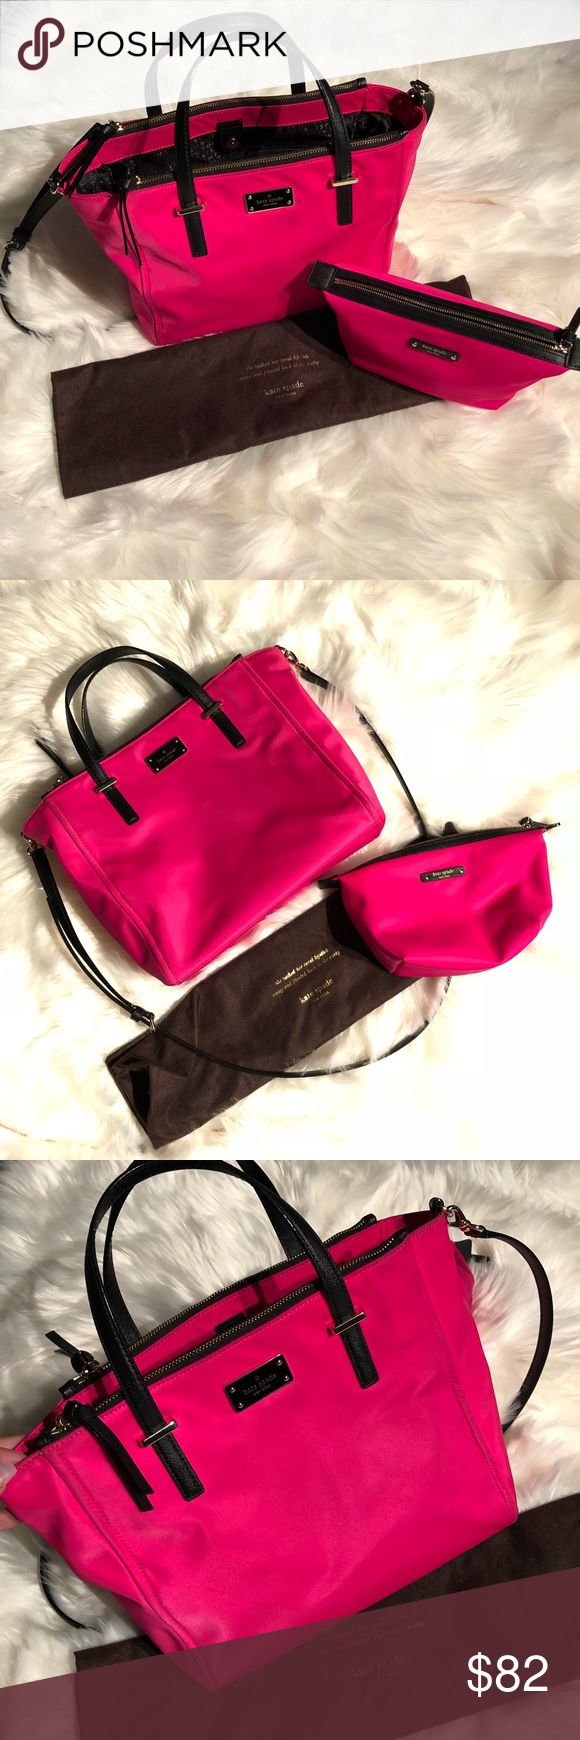 🔥ONE DAY SALE 💵 firm Kate Spade Pink Bag & Case Kate Spade Hot Pink Nylon Bag & Cosmetic Case  Preowned, excellent condition. Very minimal corner wear; nylon can be cleaned easily.   Dust bag also included!  From smoke free home :) kate spade Bags